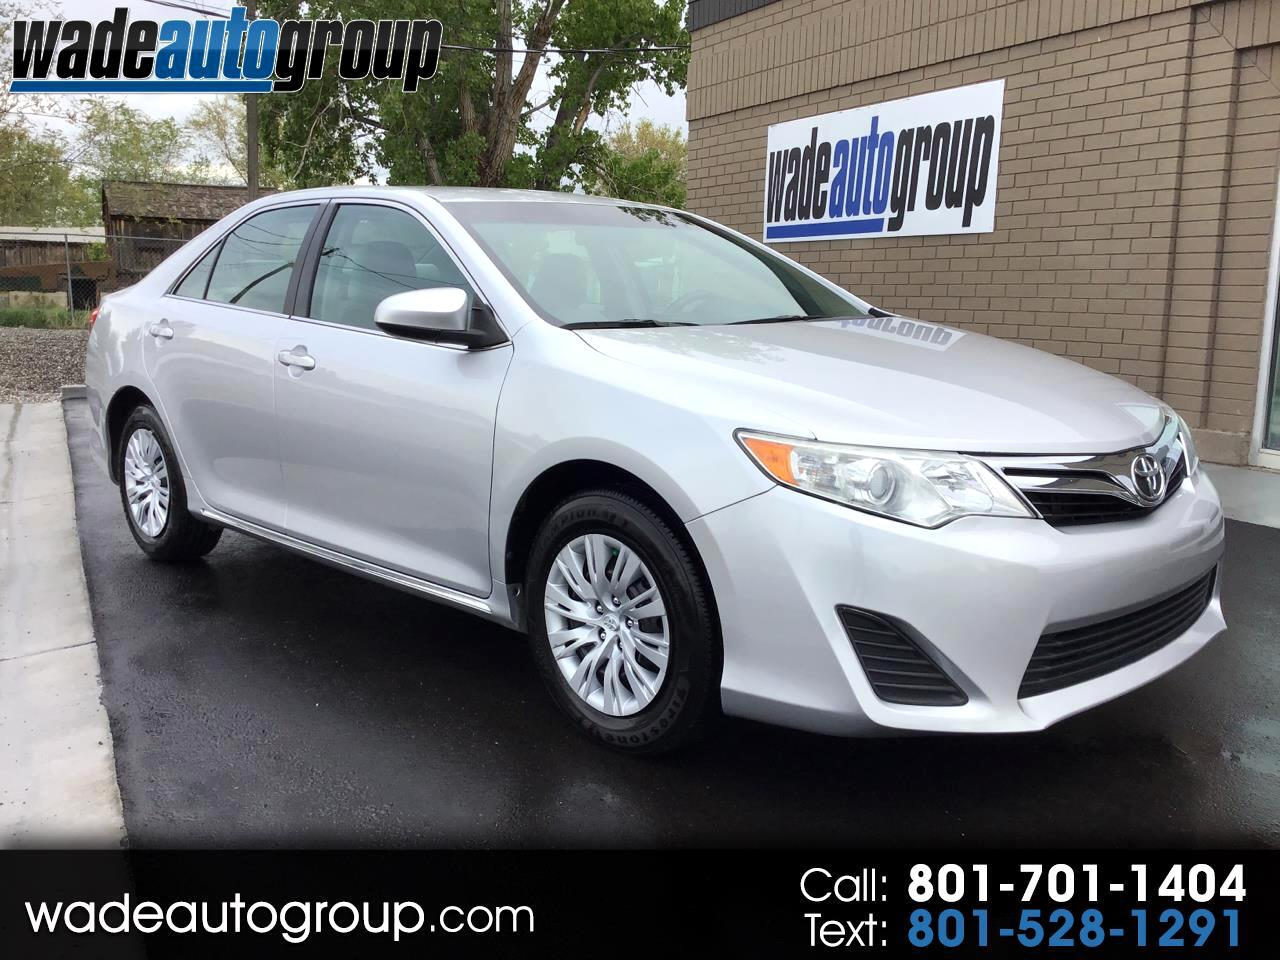 2013 Toyota Camry LE  2.5L 4Cyl FWD